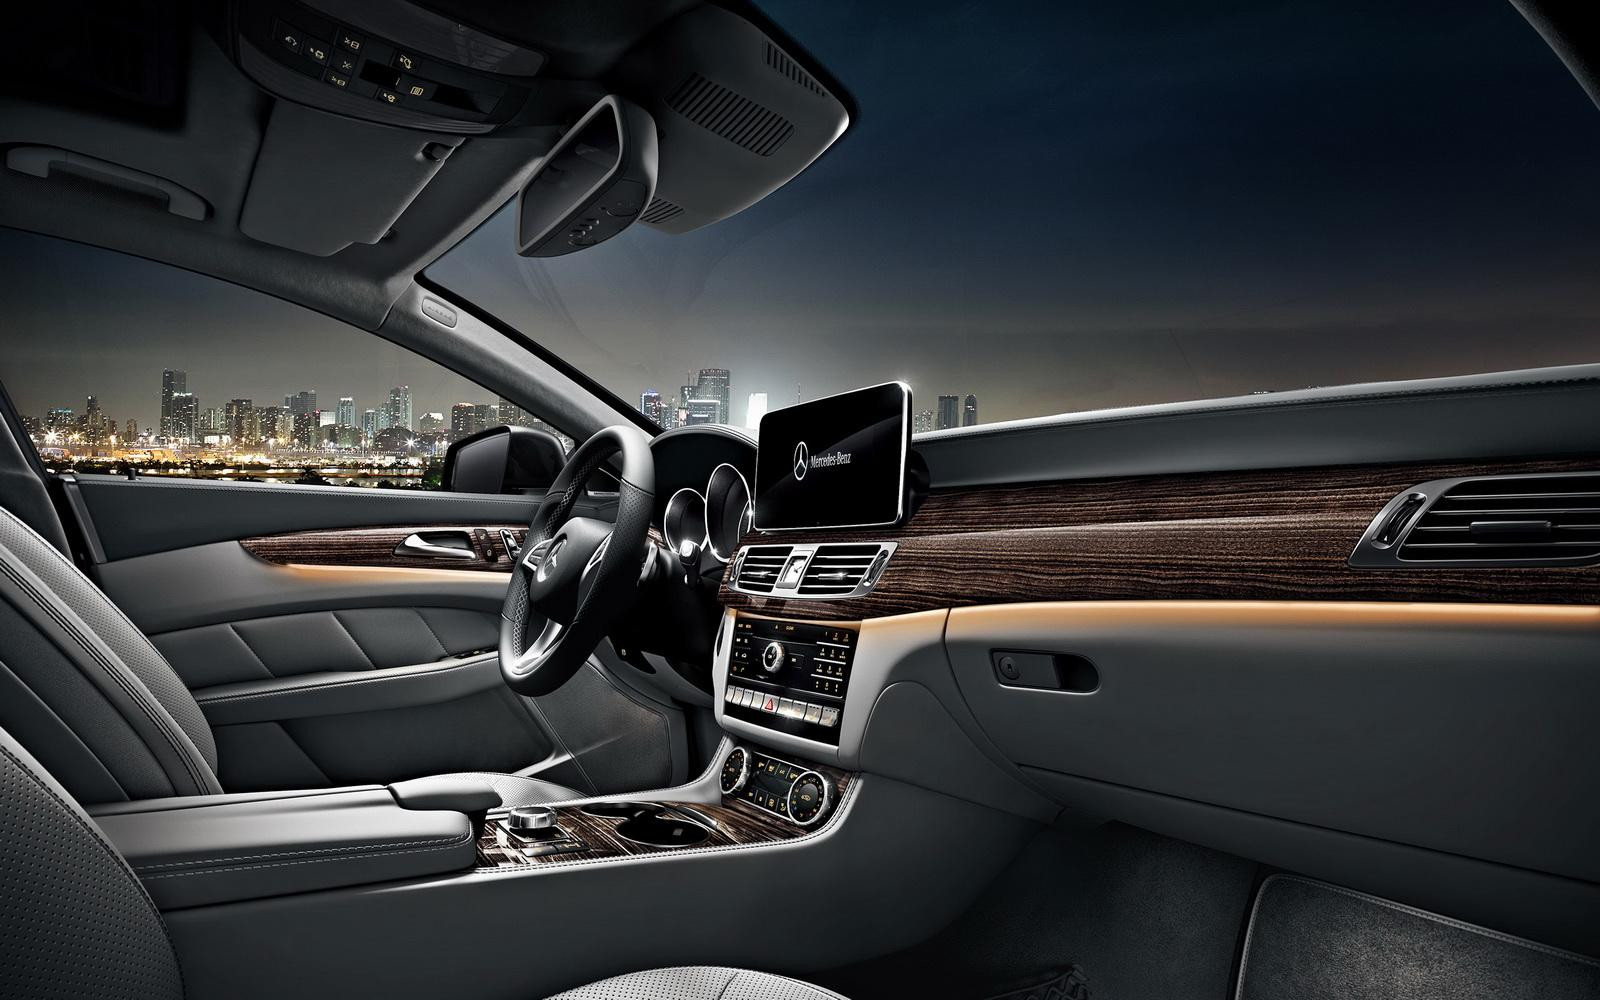 2019-Mercedes-Cls-INterior-Shots.jpg